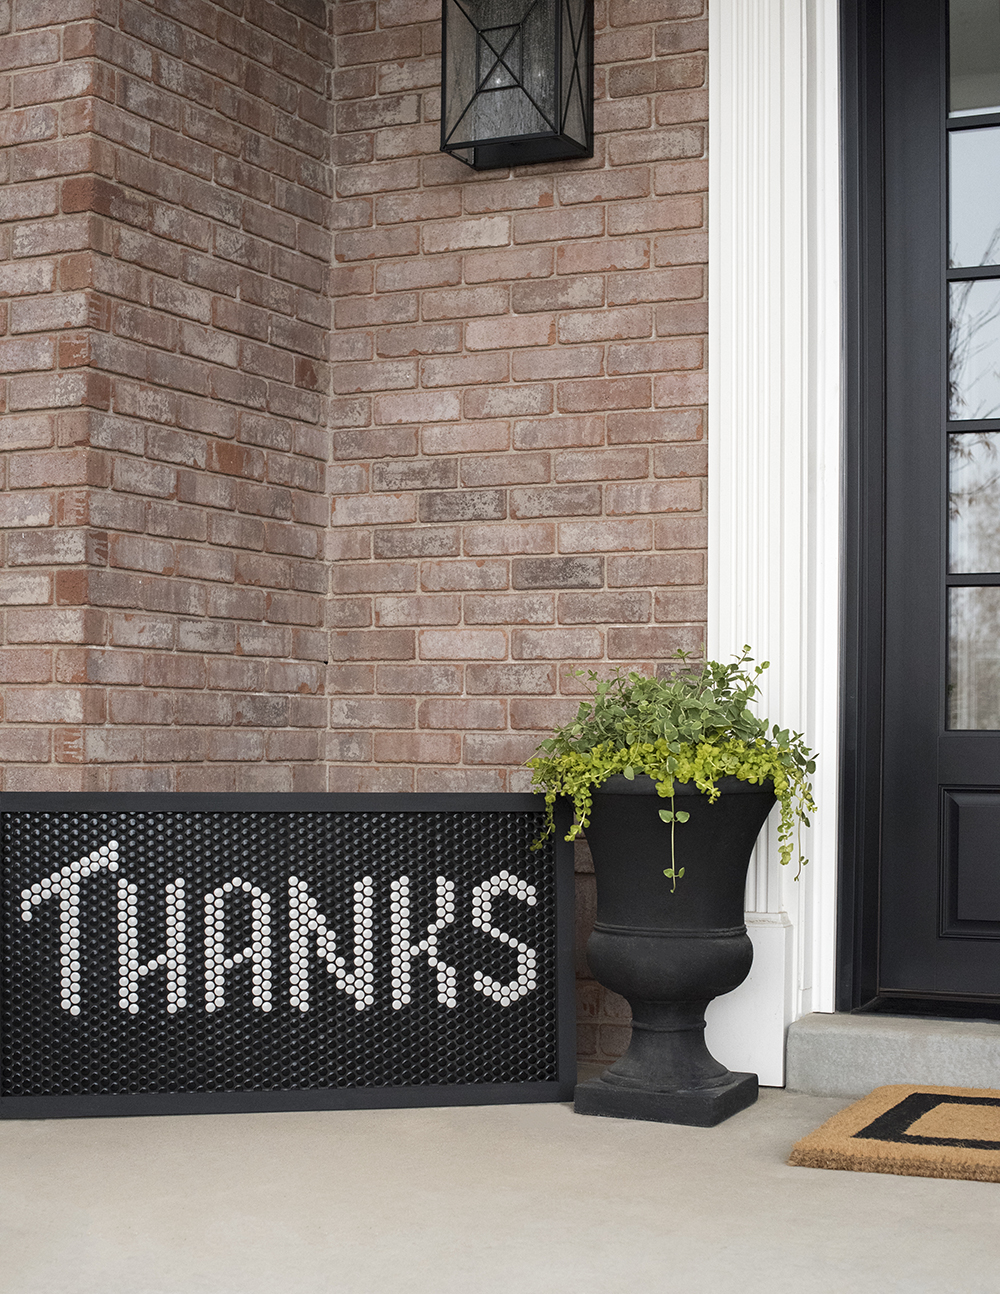 Diy Tile Text A Big Thank You Room For Tuesday